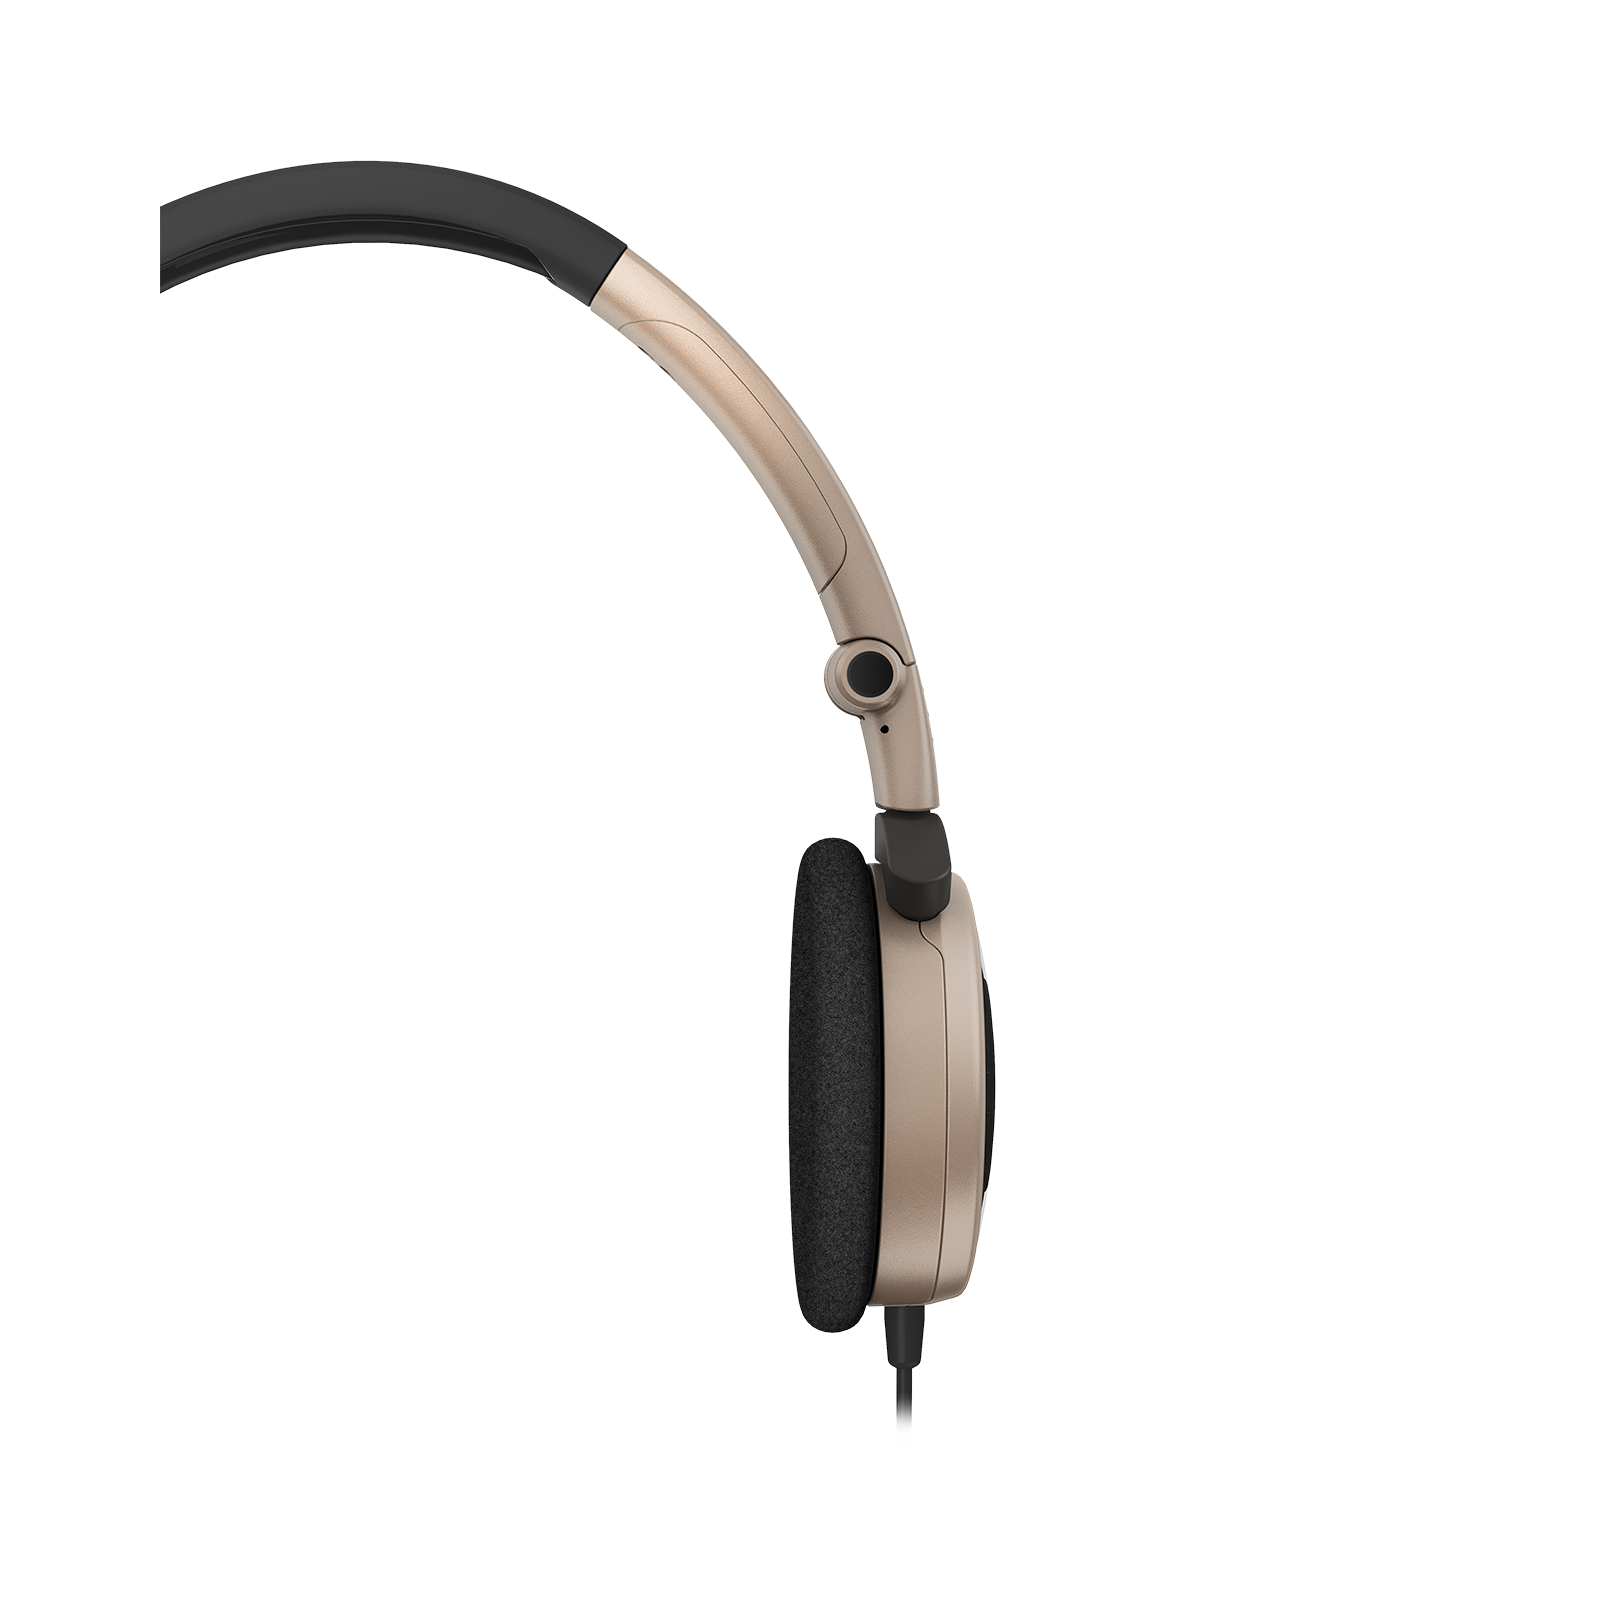 Y 30 - Brown - Stylish, uncomplicated, foldable headphones with 1 button universal remote/mic - Detailshot 2